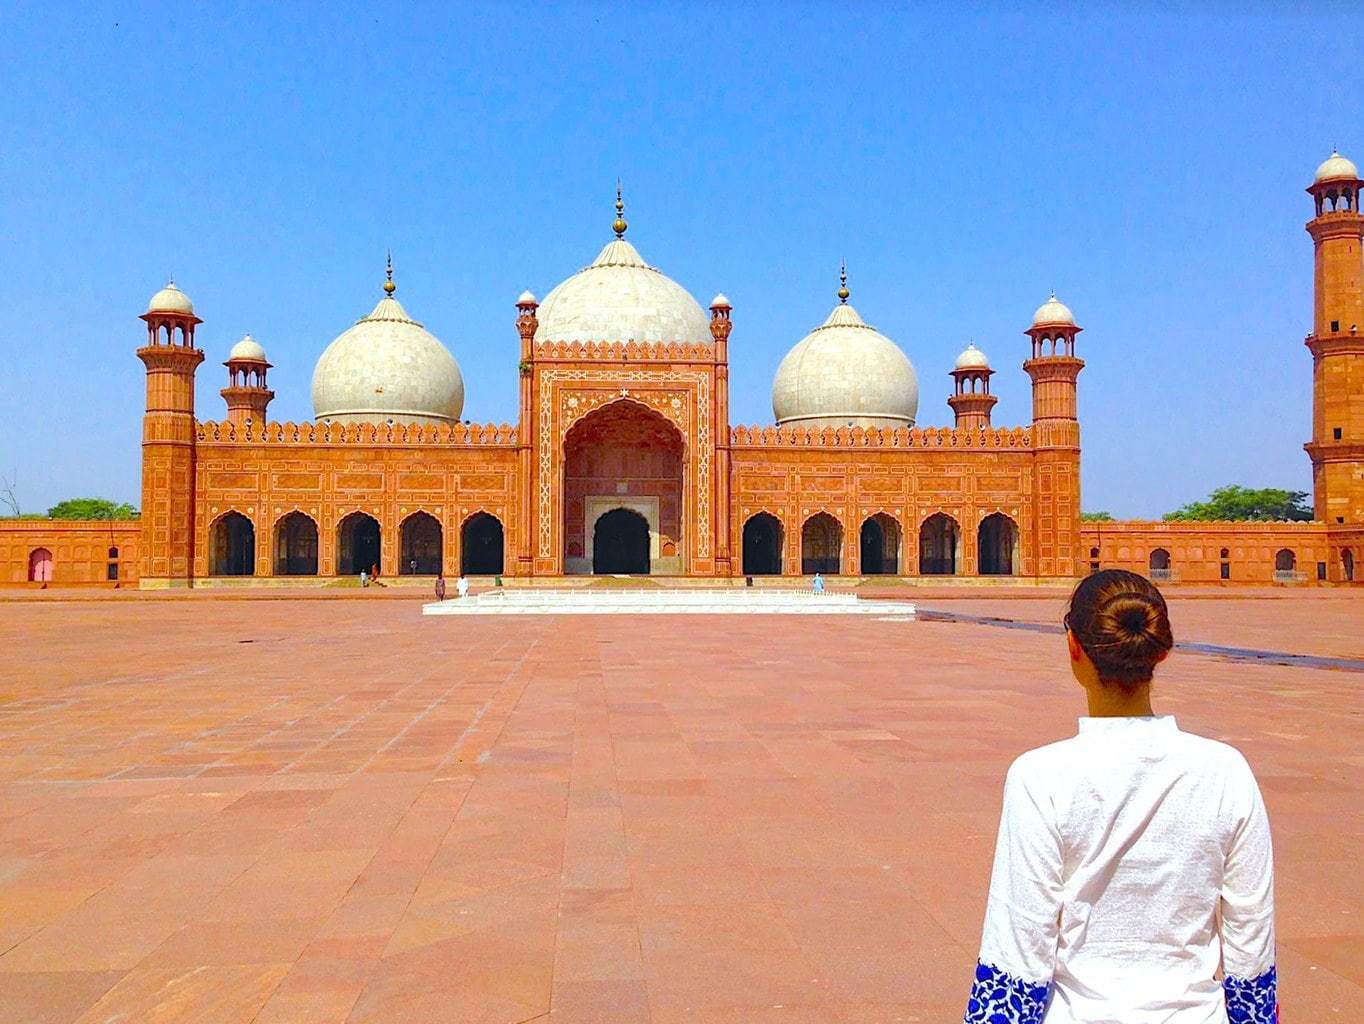 Badshahi Mosque view